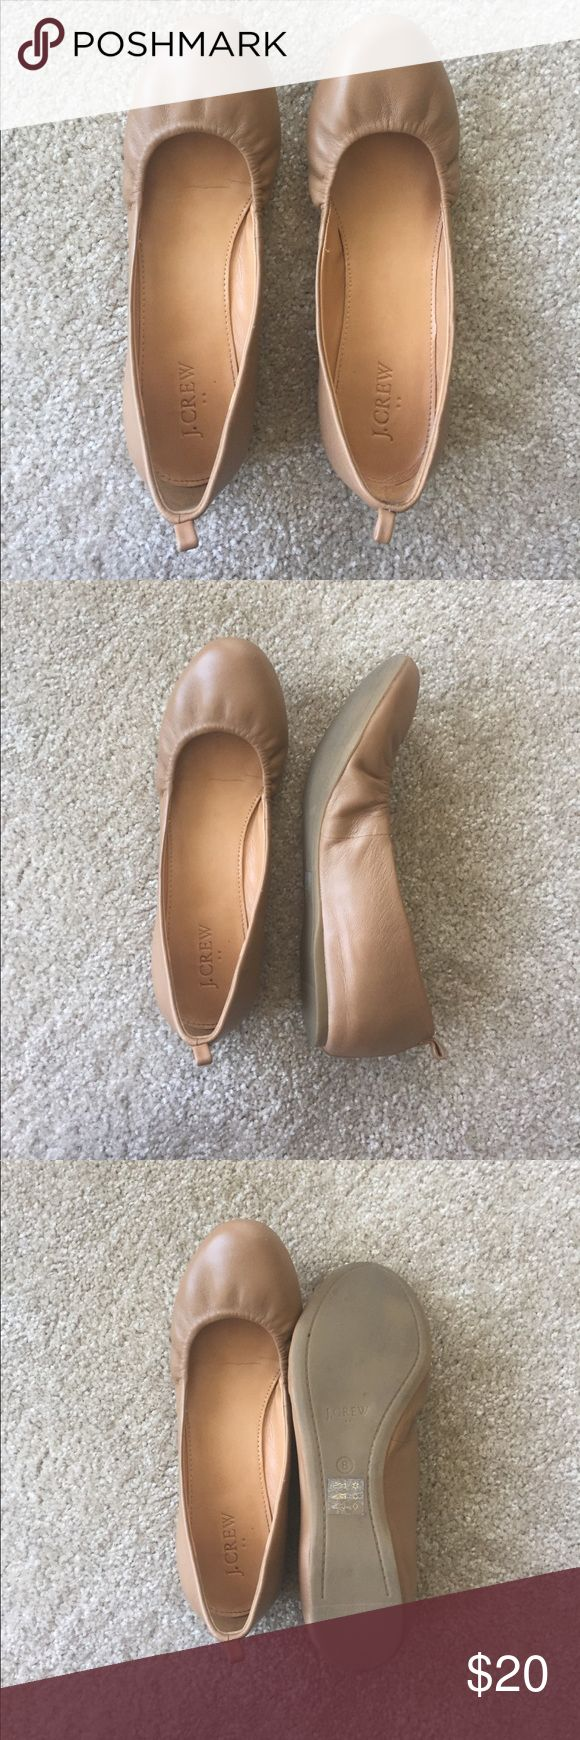 Weekend sale! ⚡️J. Crew camel leather ballet flats J. Crew camel leather flat in size 8. Good condition but I've worn a few times. Selling because they're a little too tight on me. J. Crew Shoes Flats & Loafers